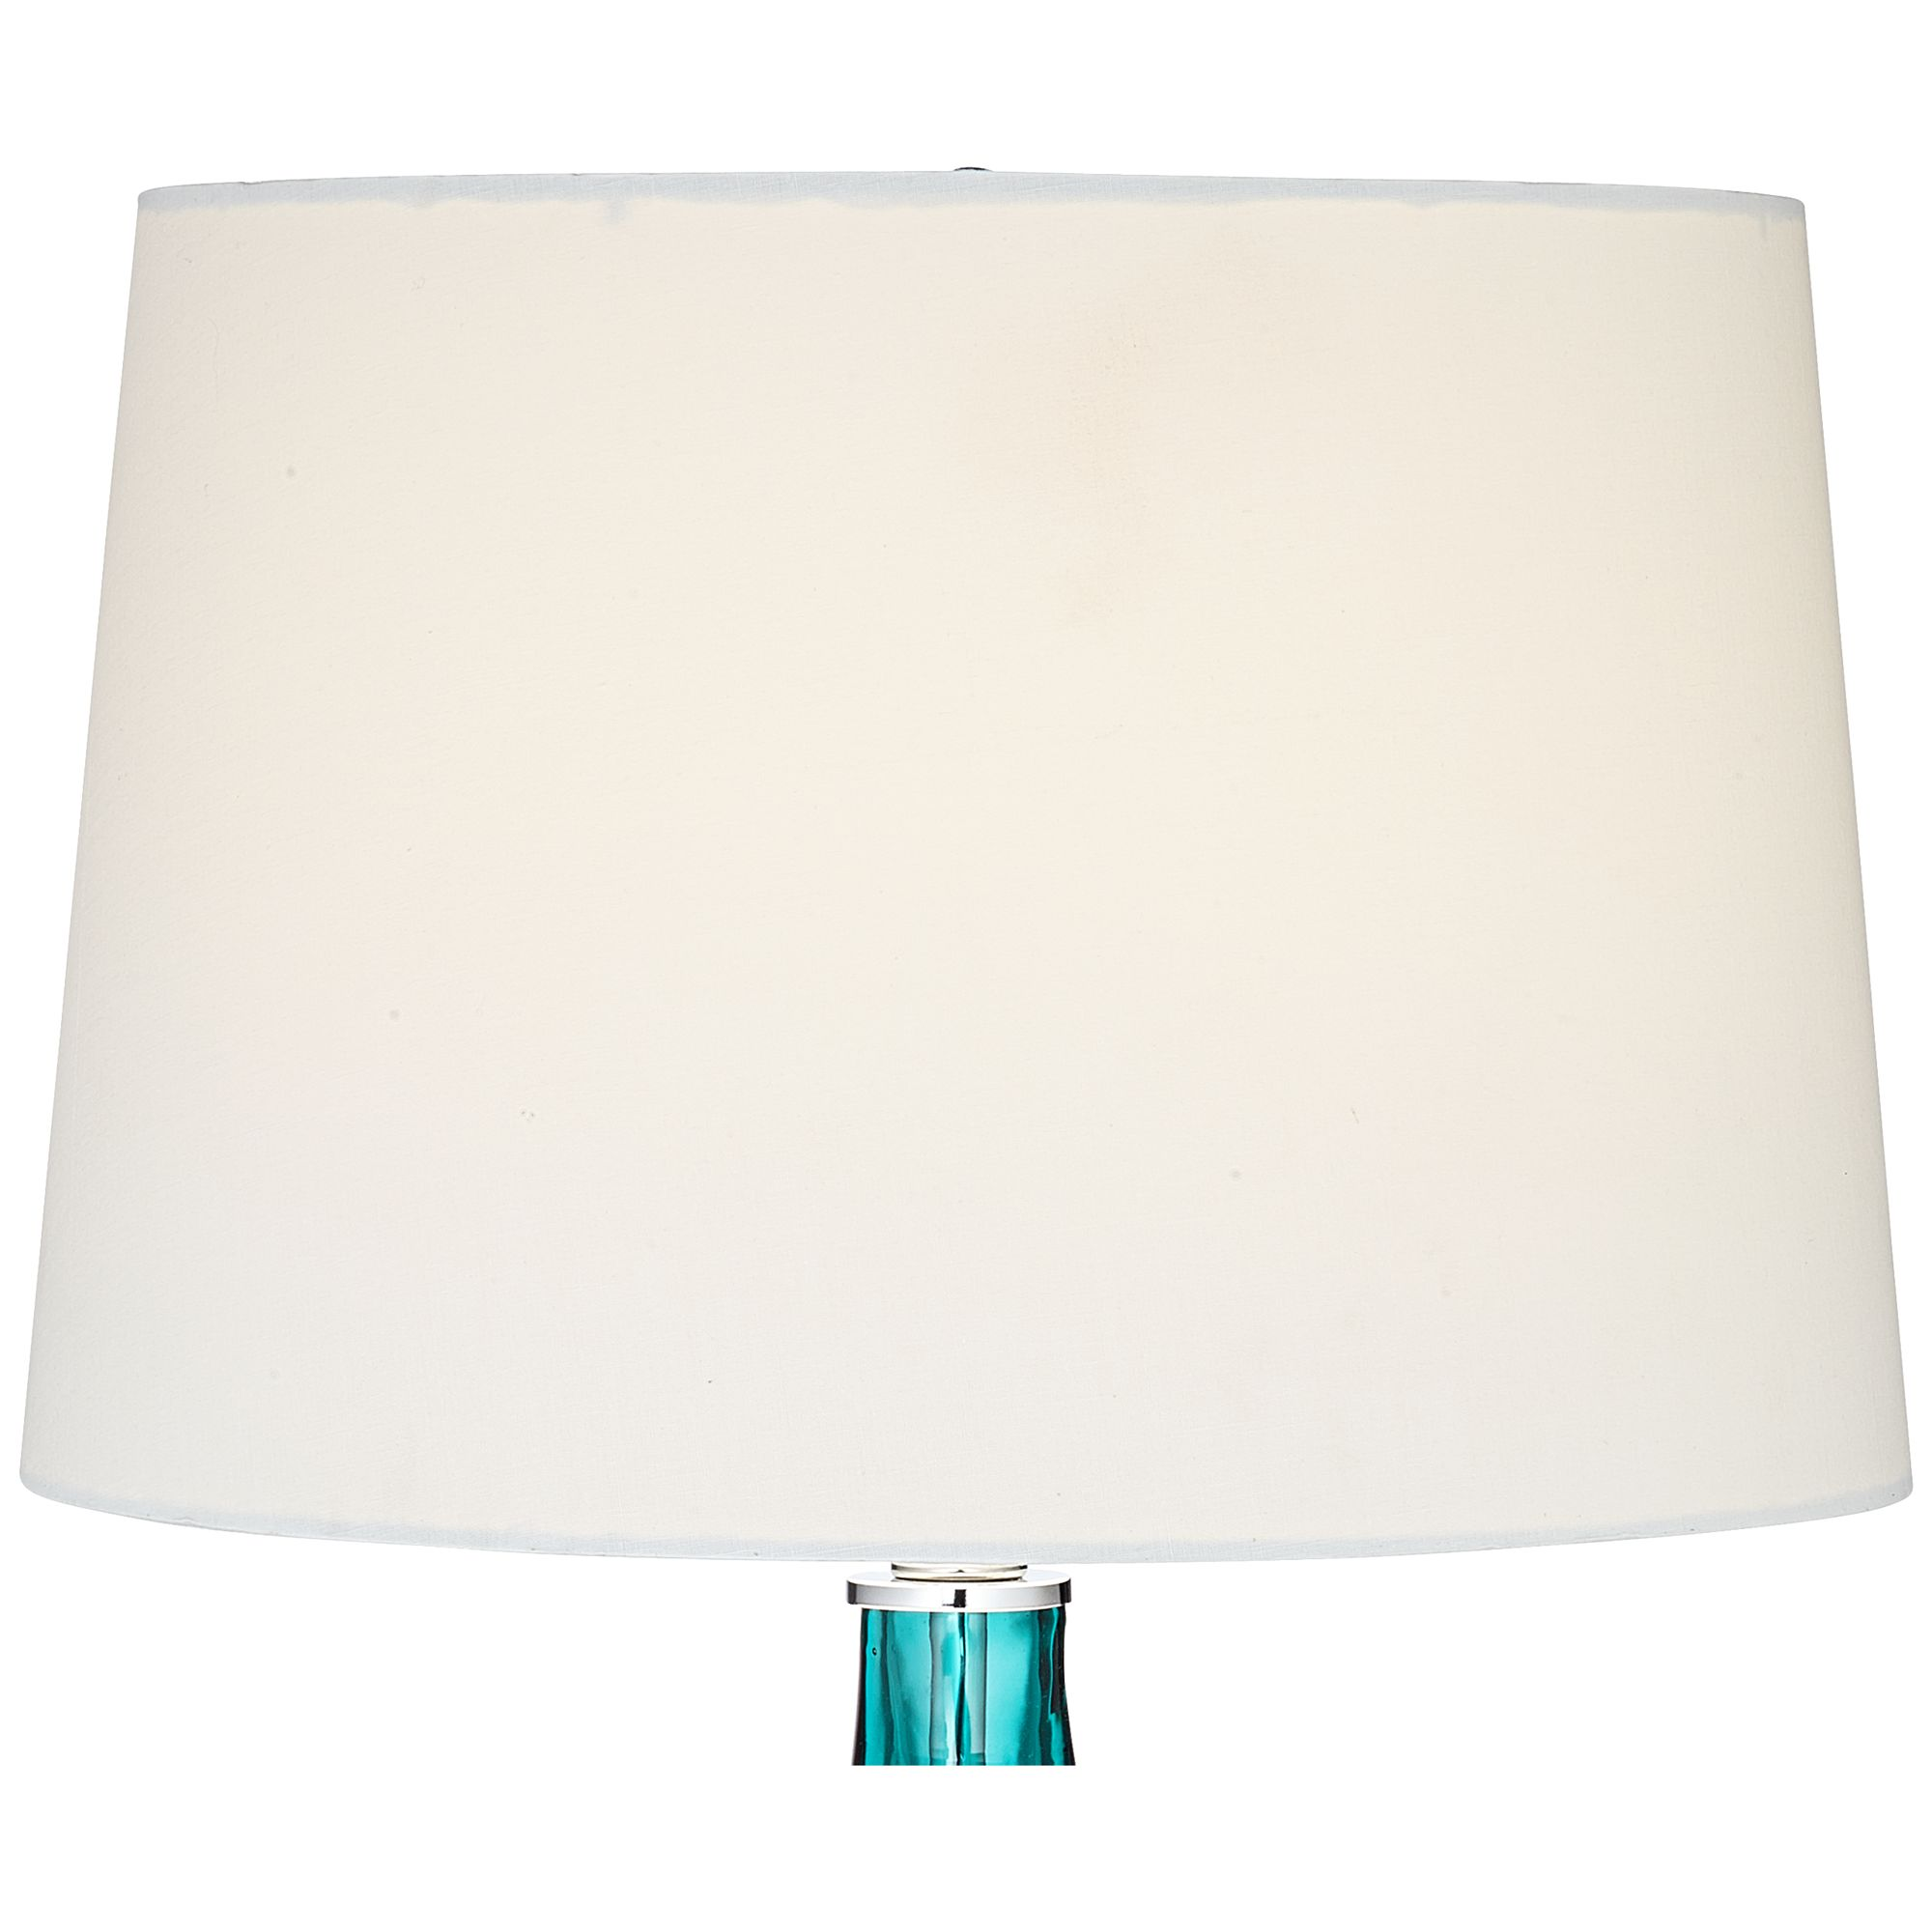 Picture of: Possini Euro Design Modern Table Lamp Turquoise Glass Wave Pattern Tapered White Drum Shade For Living Room Family Bedroom Bedside Walmart Com Walmart Com